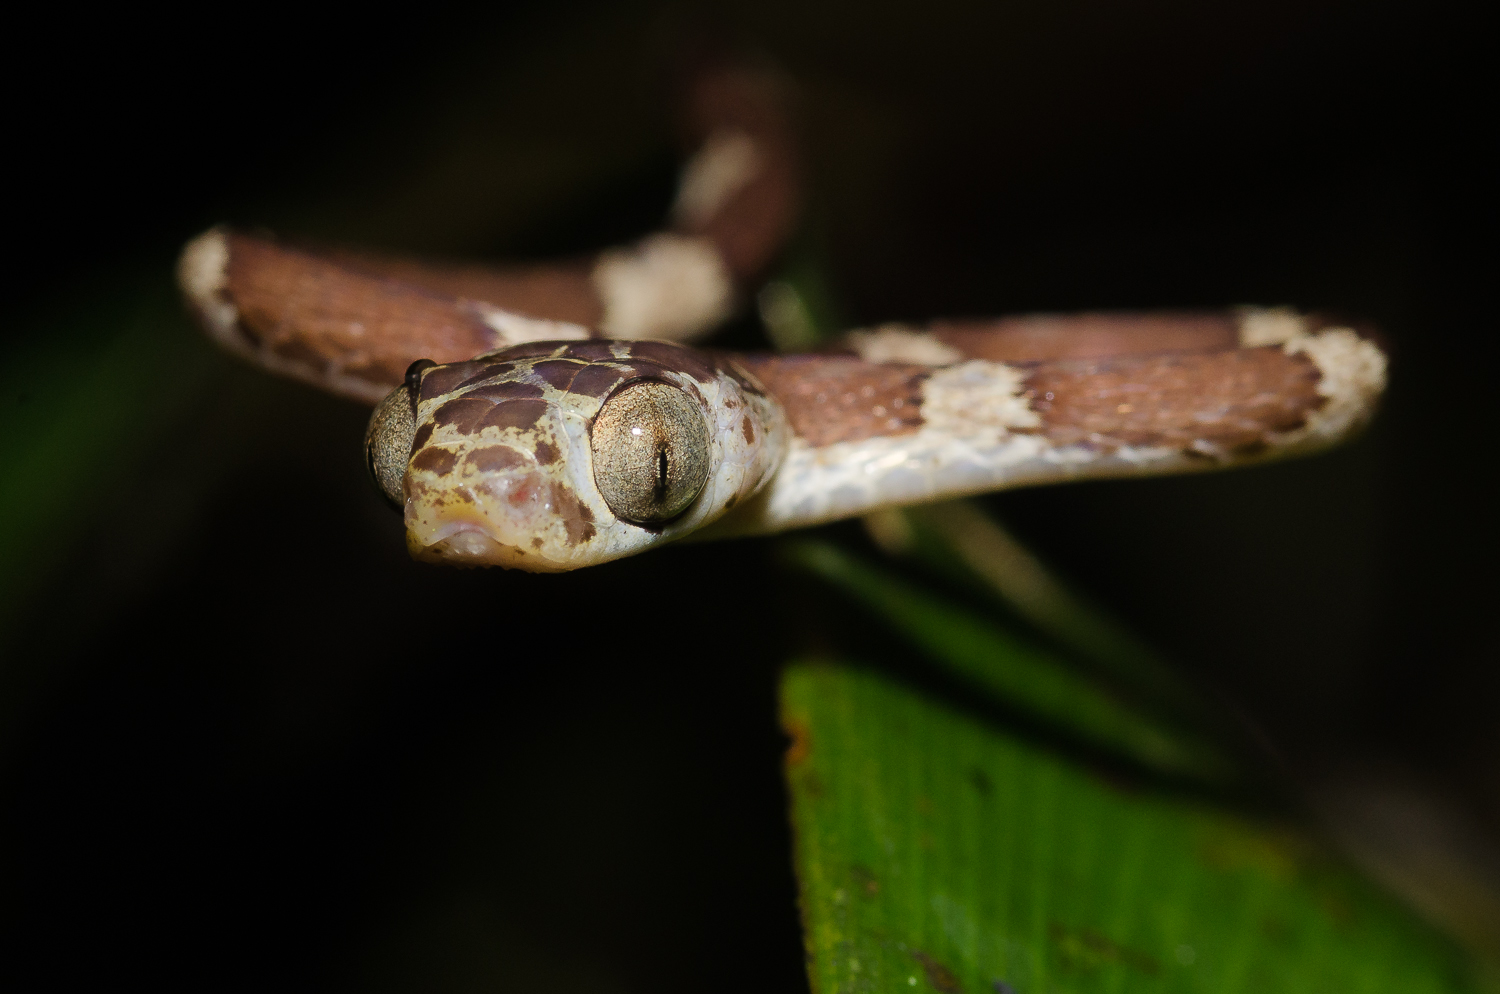 A blunt-head tree snake at night in the jungle.